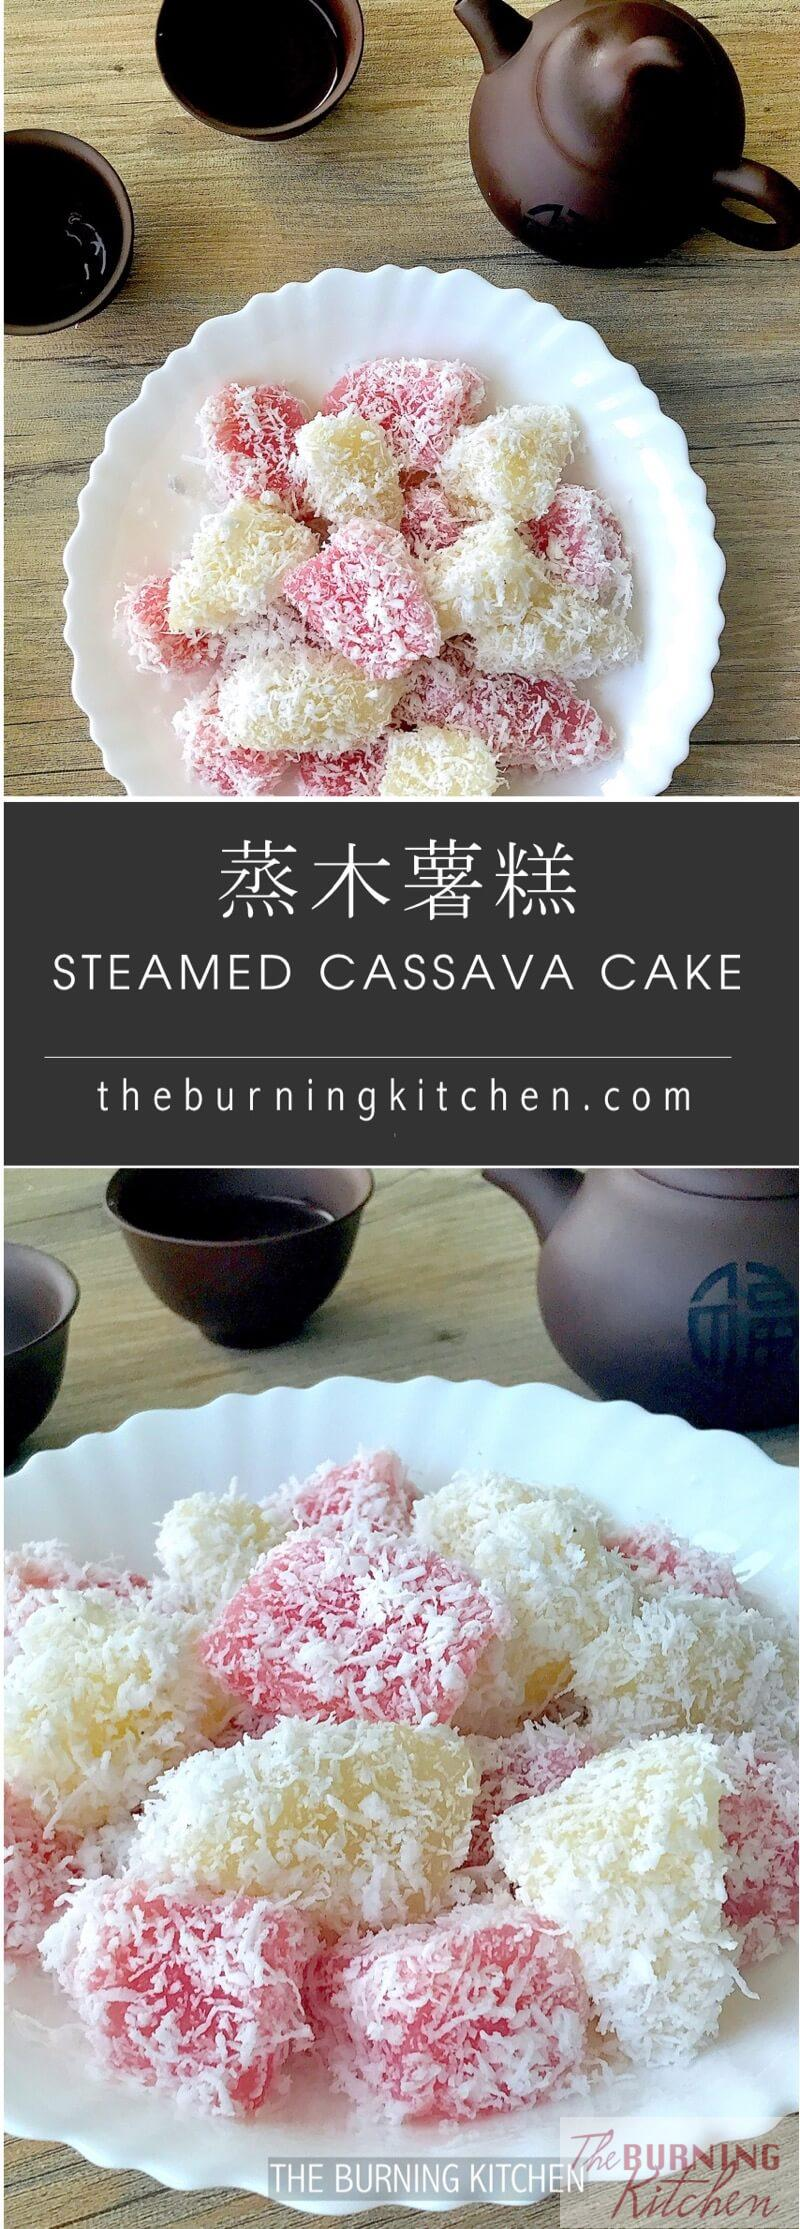 Steamed Tapioca/Cassava Cake (蒸木薯糕 / Kueh Ubi Kayu): Nothing beats freshly steamed Tapioca Cake! Soft, moist and aromatic, this home-made dessert is easy and fast to make. Once you've tried it, you'll never go back to store-made! #snack #steamedtapiocacake #tapiocakueh #kuehubikayu #dessert #homemade